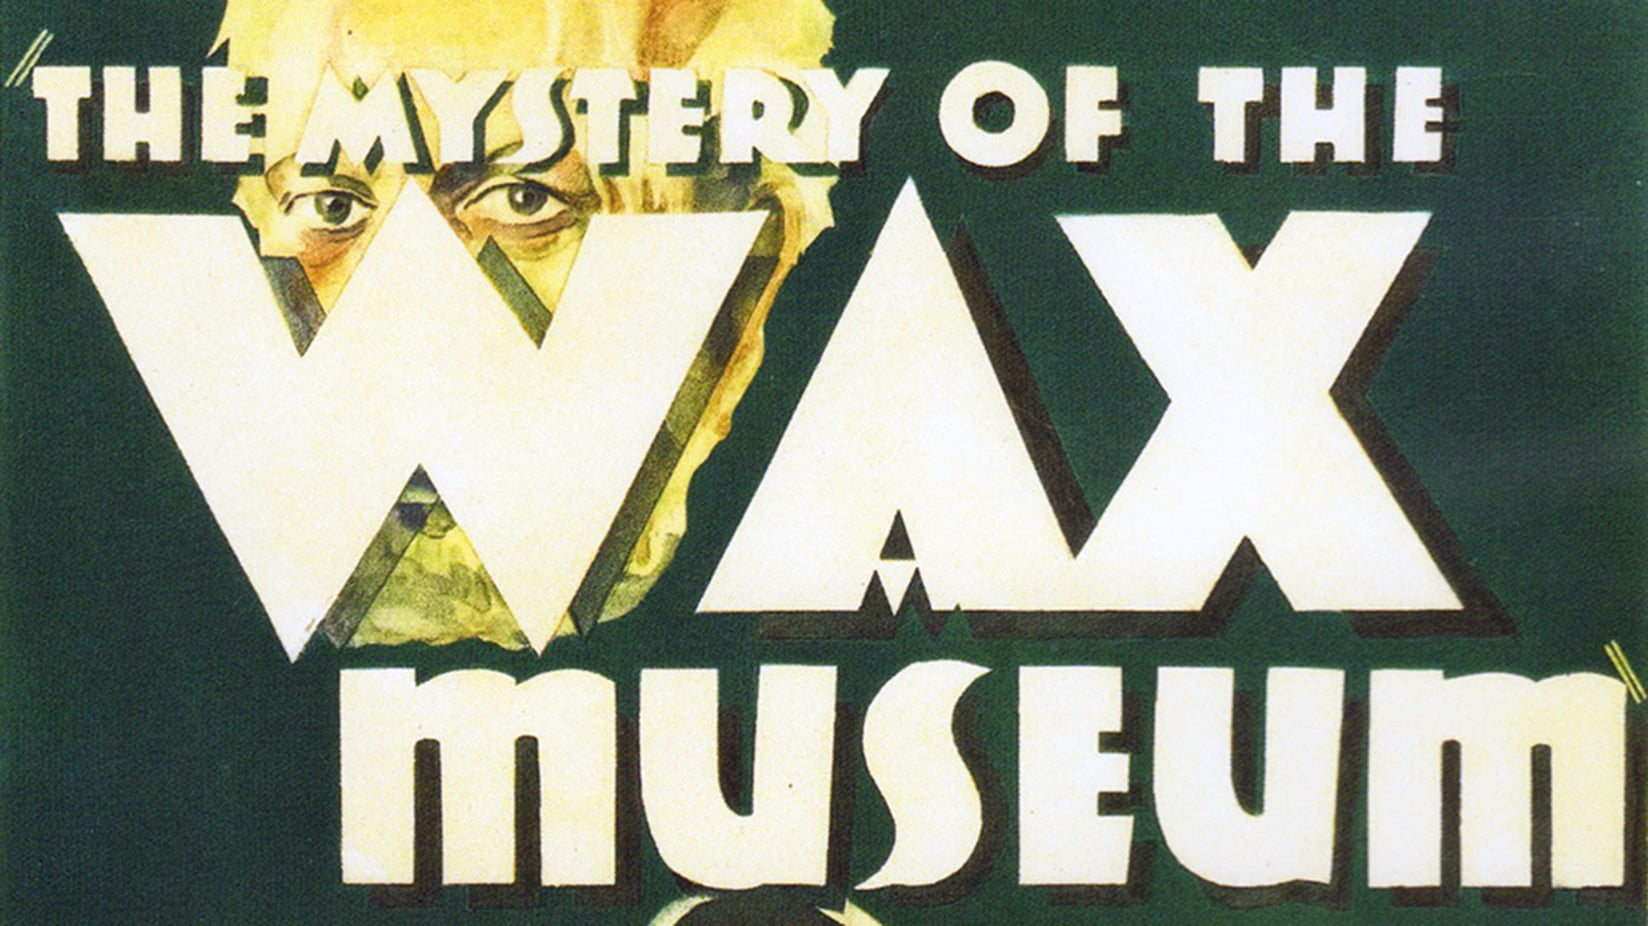 Dick Dinman, Alan K. Rode & Scott Macqueen Investigate The Mystery Of The Wax Museum!